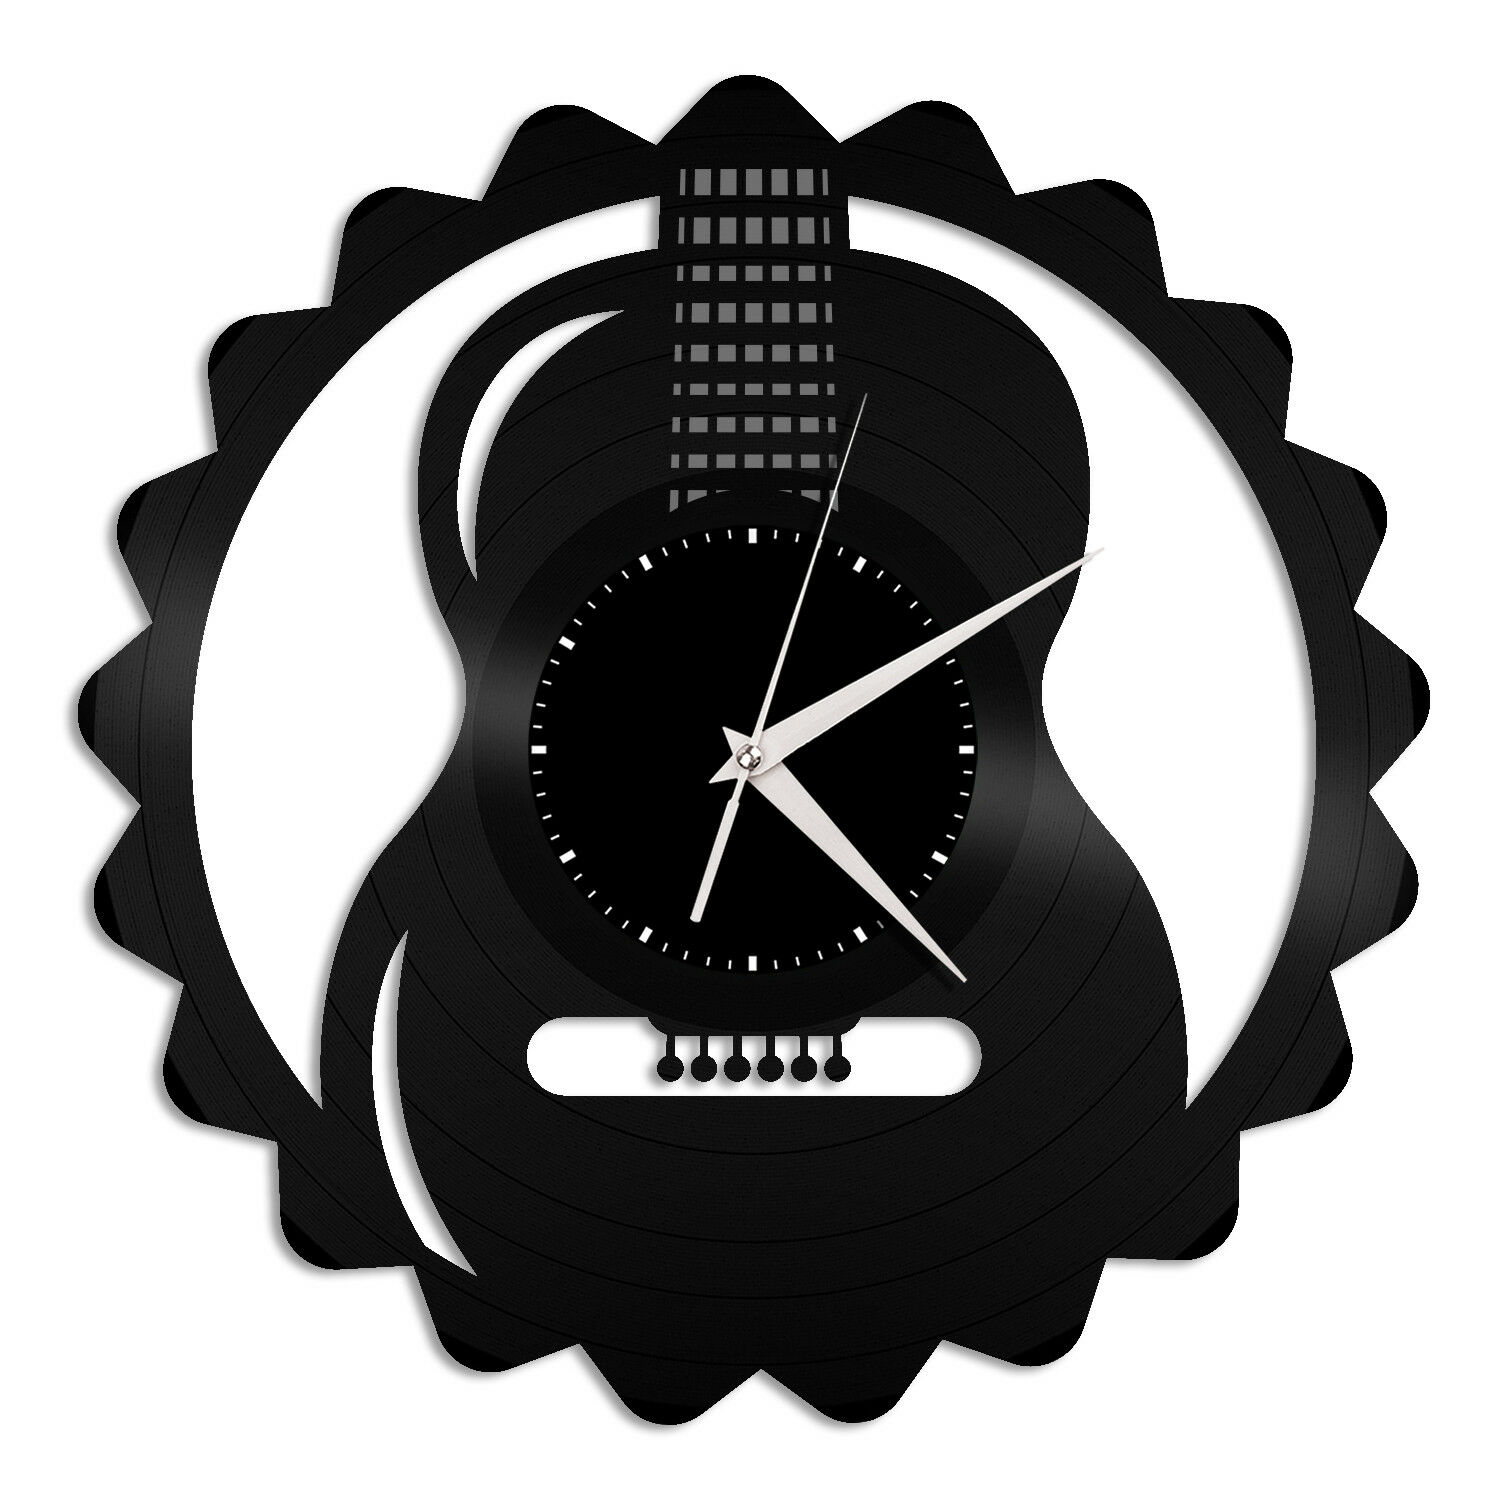 35bed7967761 Details about Guitar Vinyl Wall Clock Unique Gift for Music Lovers Home  Vintage Decoration